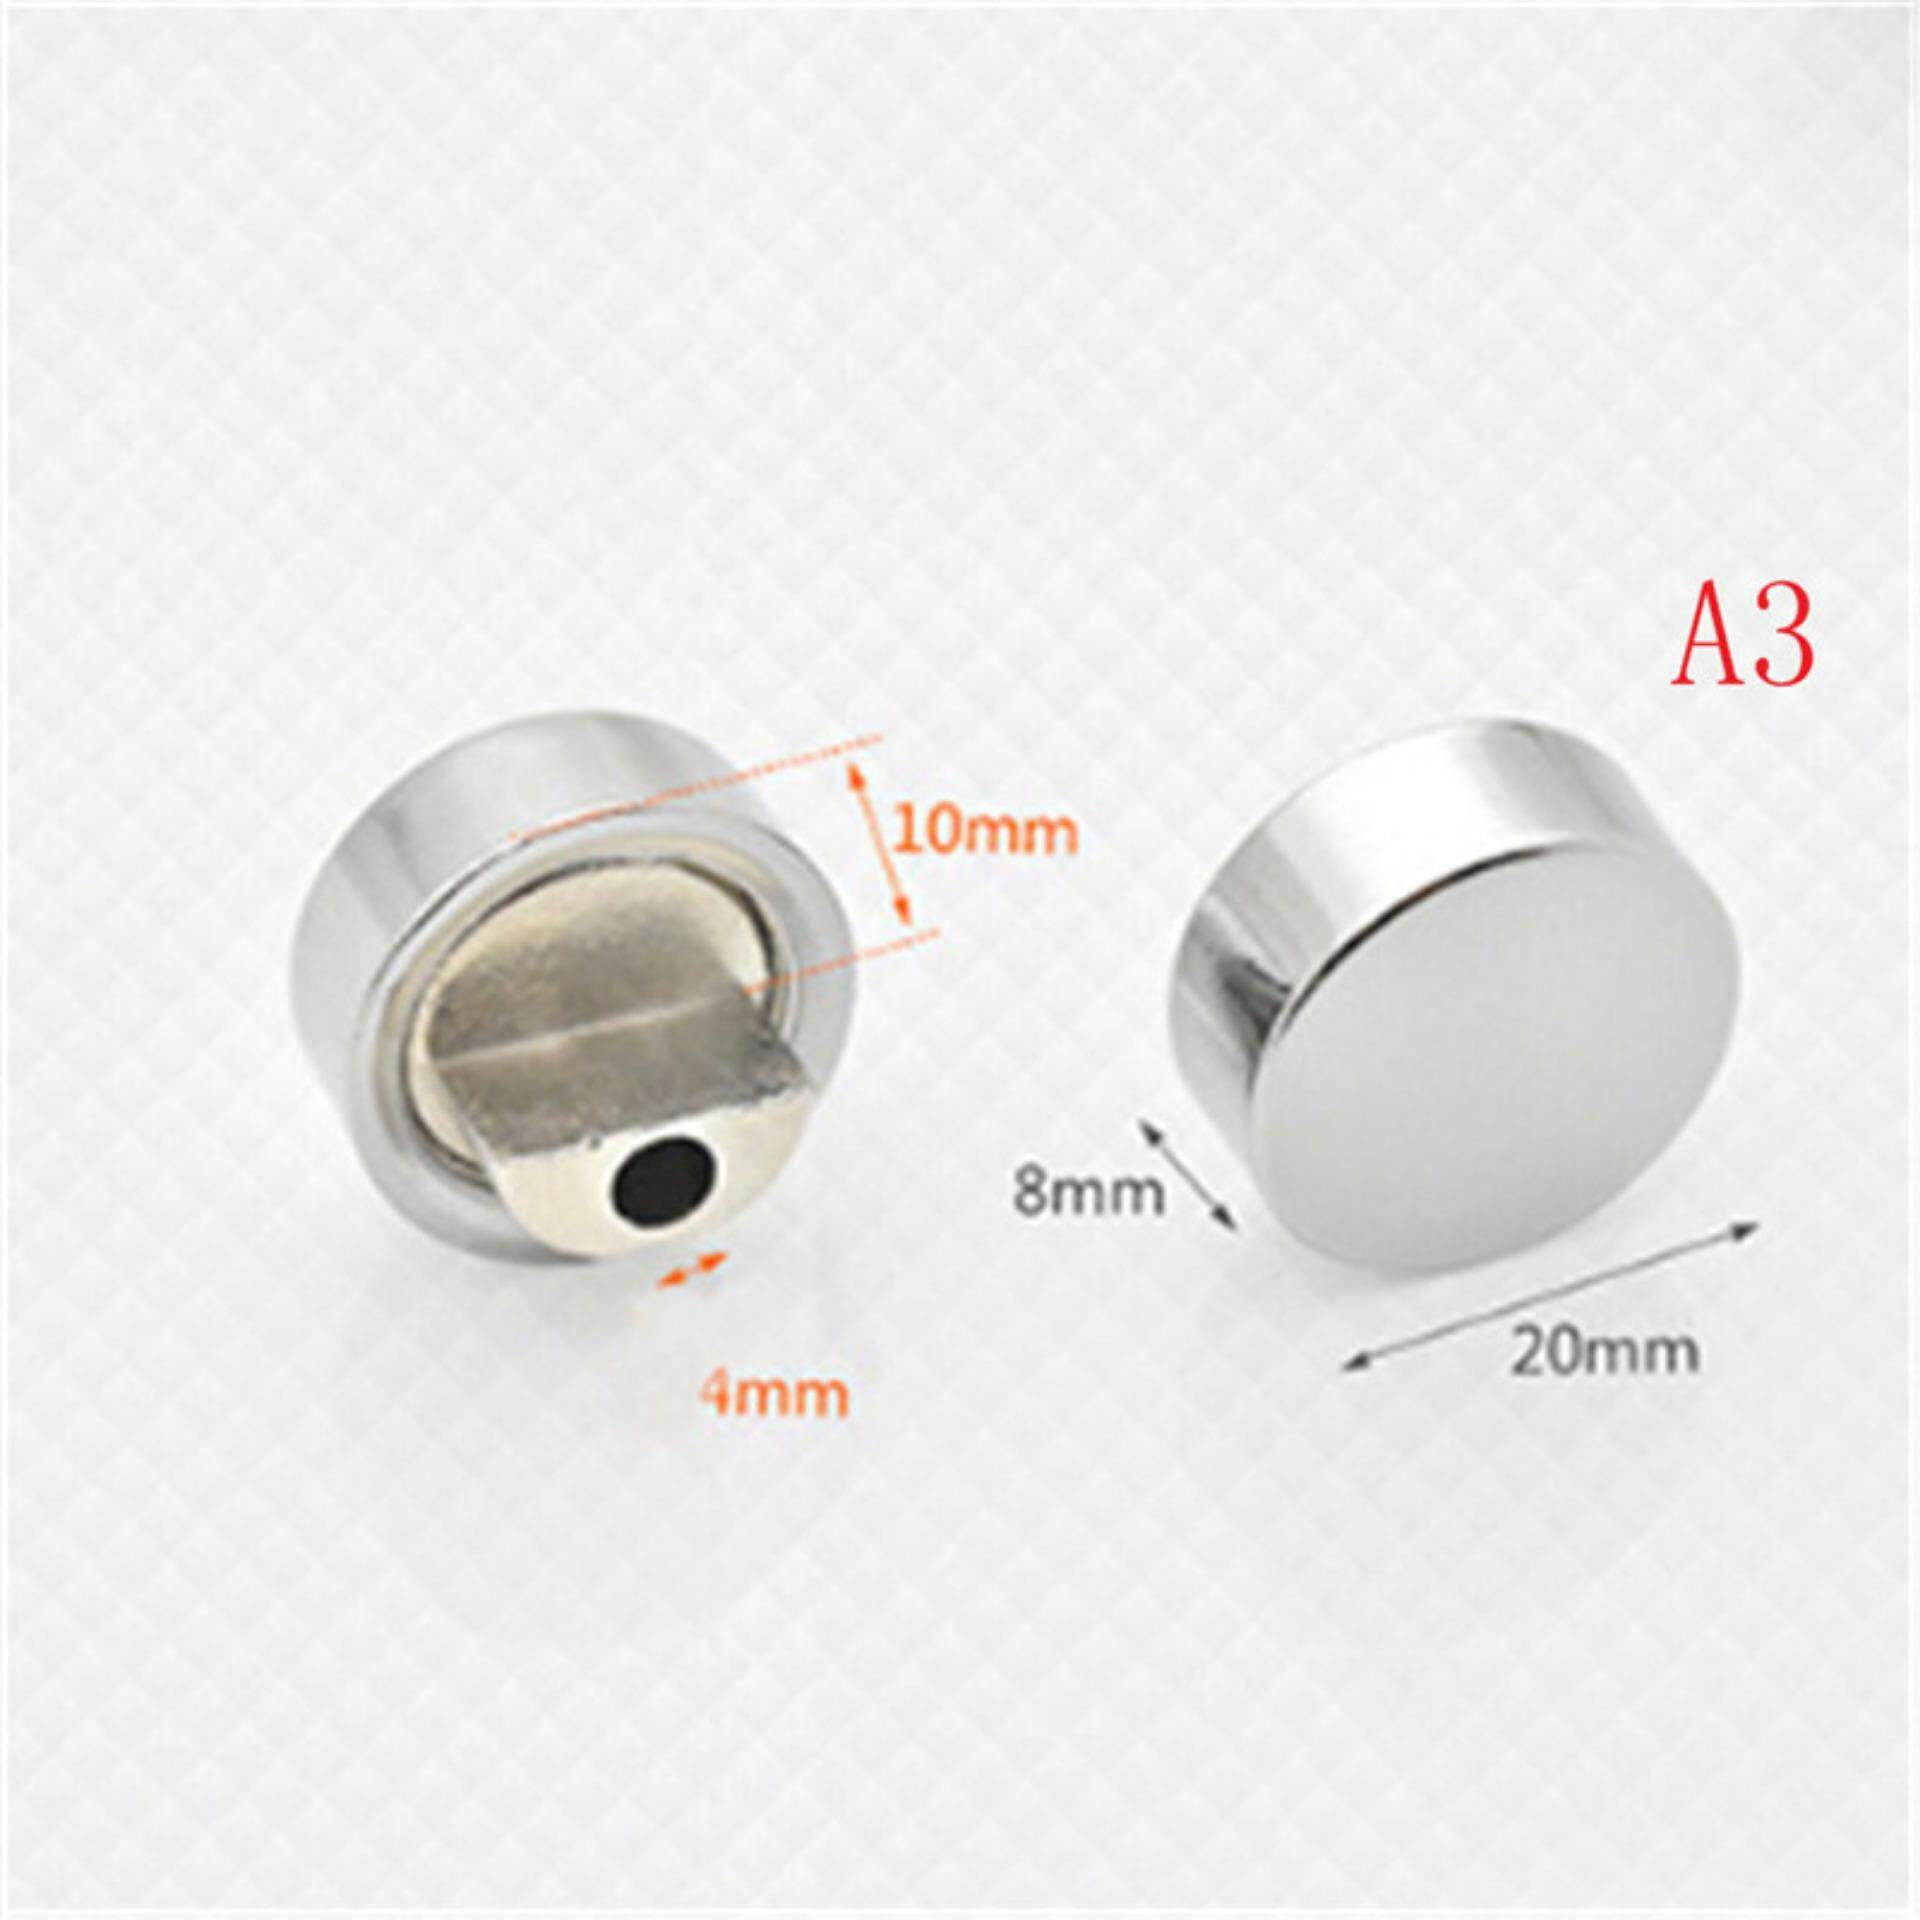 Blowing Bathroom Mirror Glass Fixed Accessories Advertising Plate Glass Clamp Fixed Clip